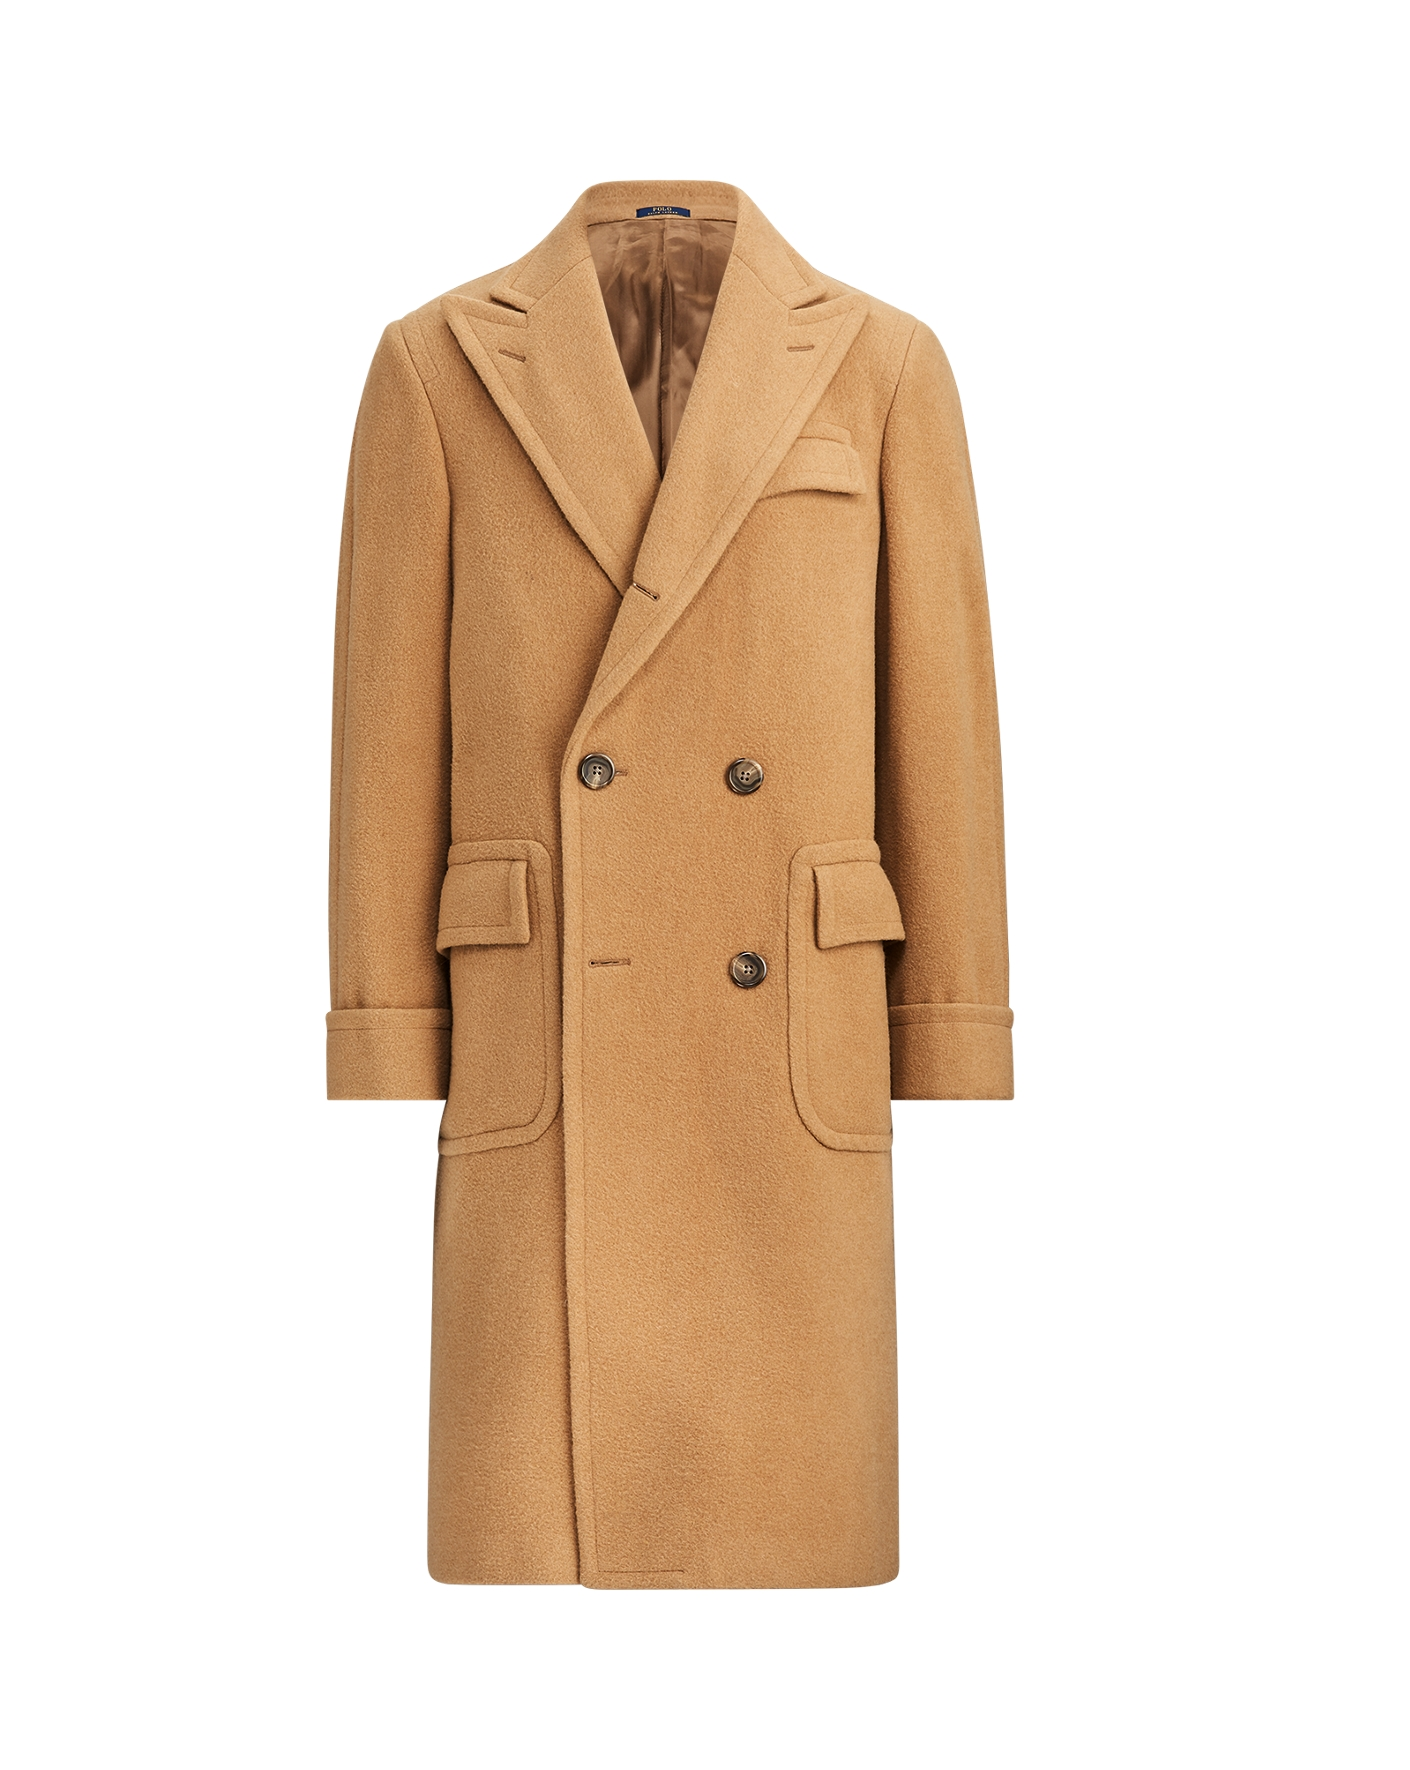 Kenneth Cole Mens LS Pea Coat. Sold by Tags Weekly. $ $ Nautica Fragrances Coffret Nautica Mens Zip Front Pea Coat. Sold by Tags Weekly. $ $ Tommy Hilfiger Mens Winlock Pea Coat. Sold by Tags Weekly. $ $ Tommy Hilfiger Mens Ross Pea Coat. Sold by Tags Weekly.